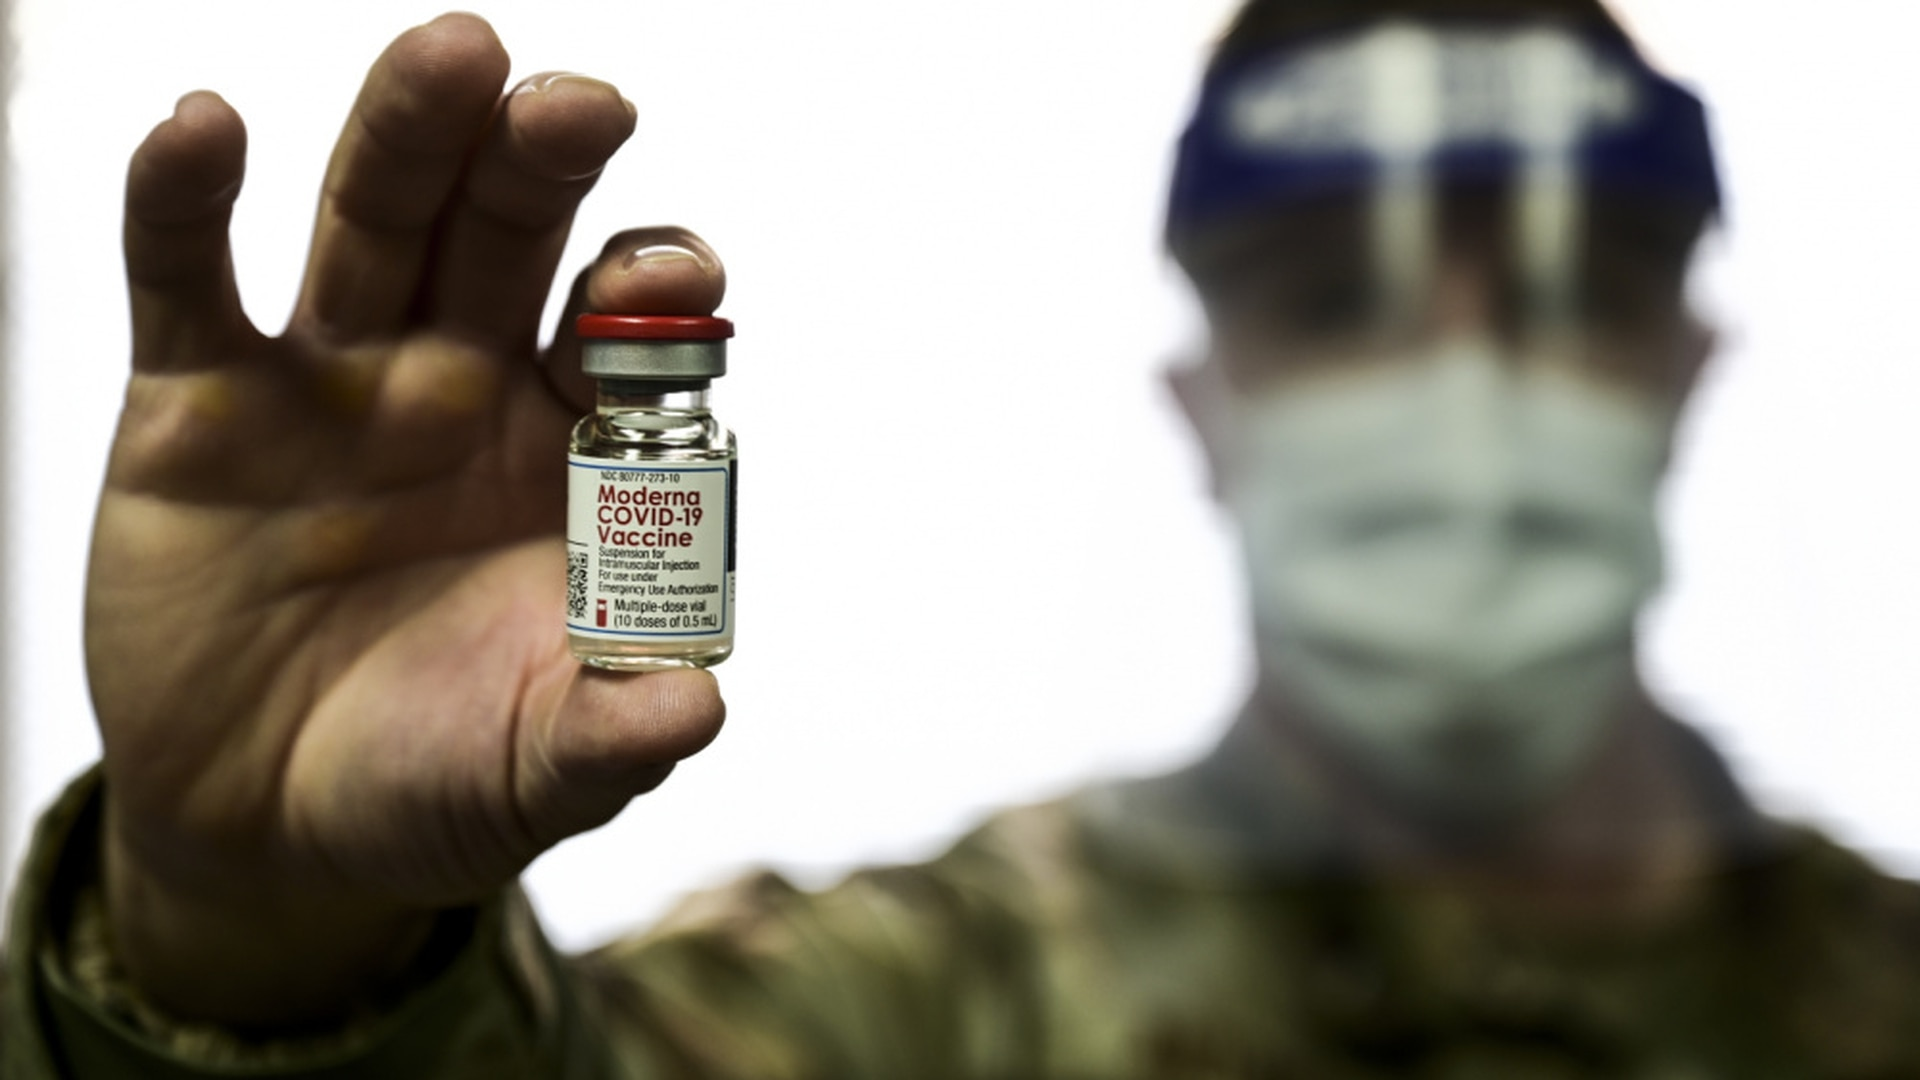 Tech. Sgt. Joseph Anthony, of the 911th Aeromedical Staging Squadron, holds a COVID-19 vaccine vial at the Pittsburgh International Airport Air Reserve Station, Pennsylvania, Feb. 4, 2021. (Joshua J. Seybert/Air Force)